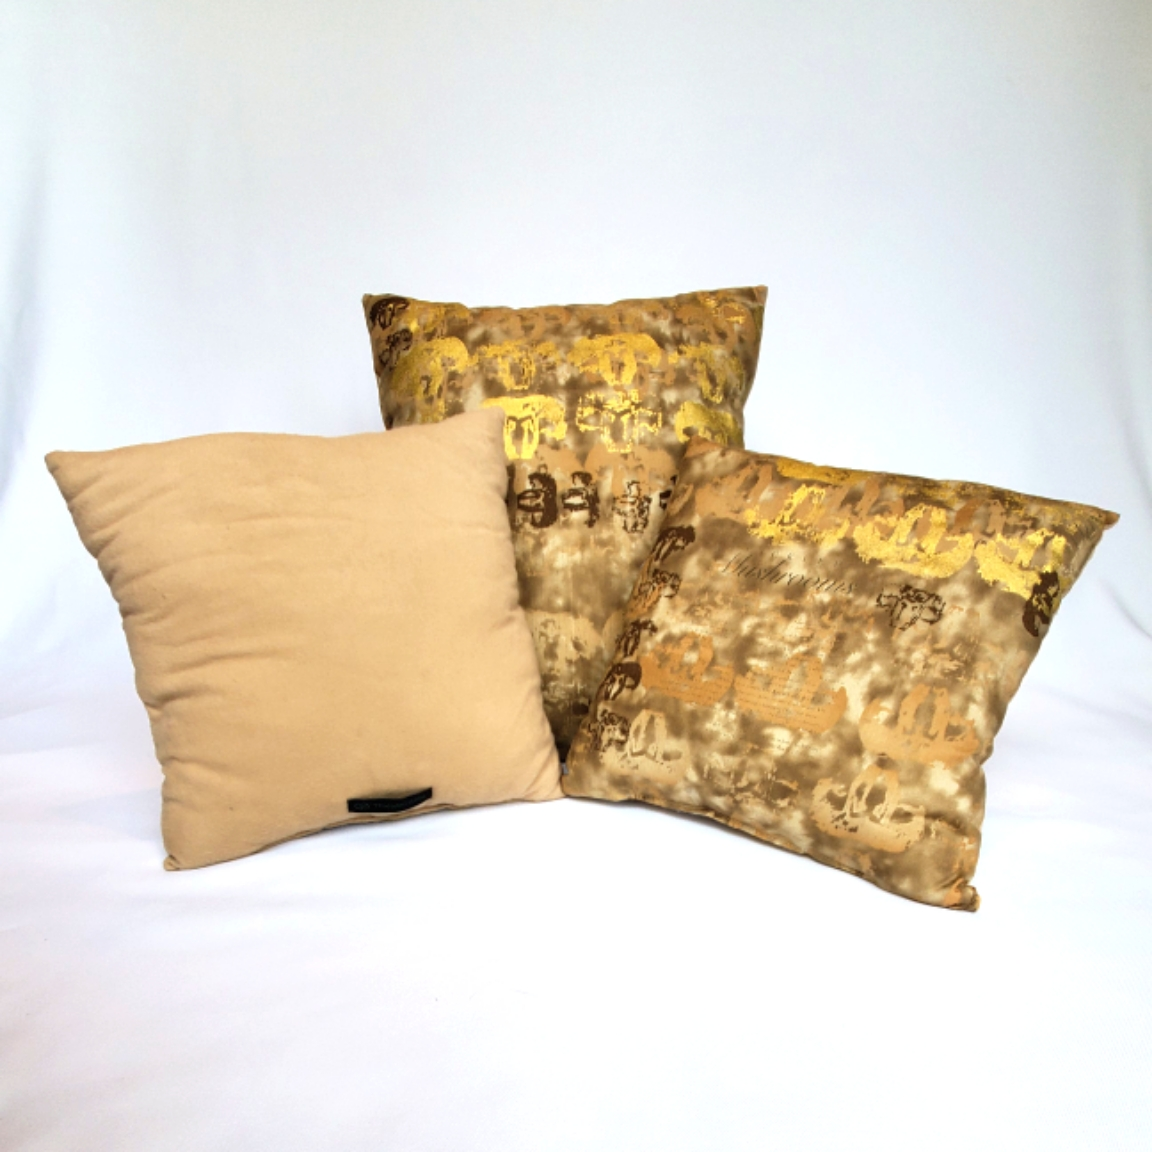 Throw Pillows pickled mushrooms